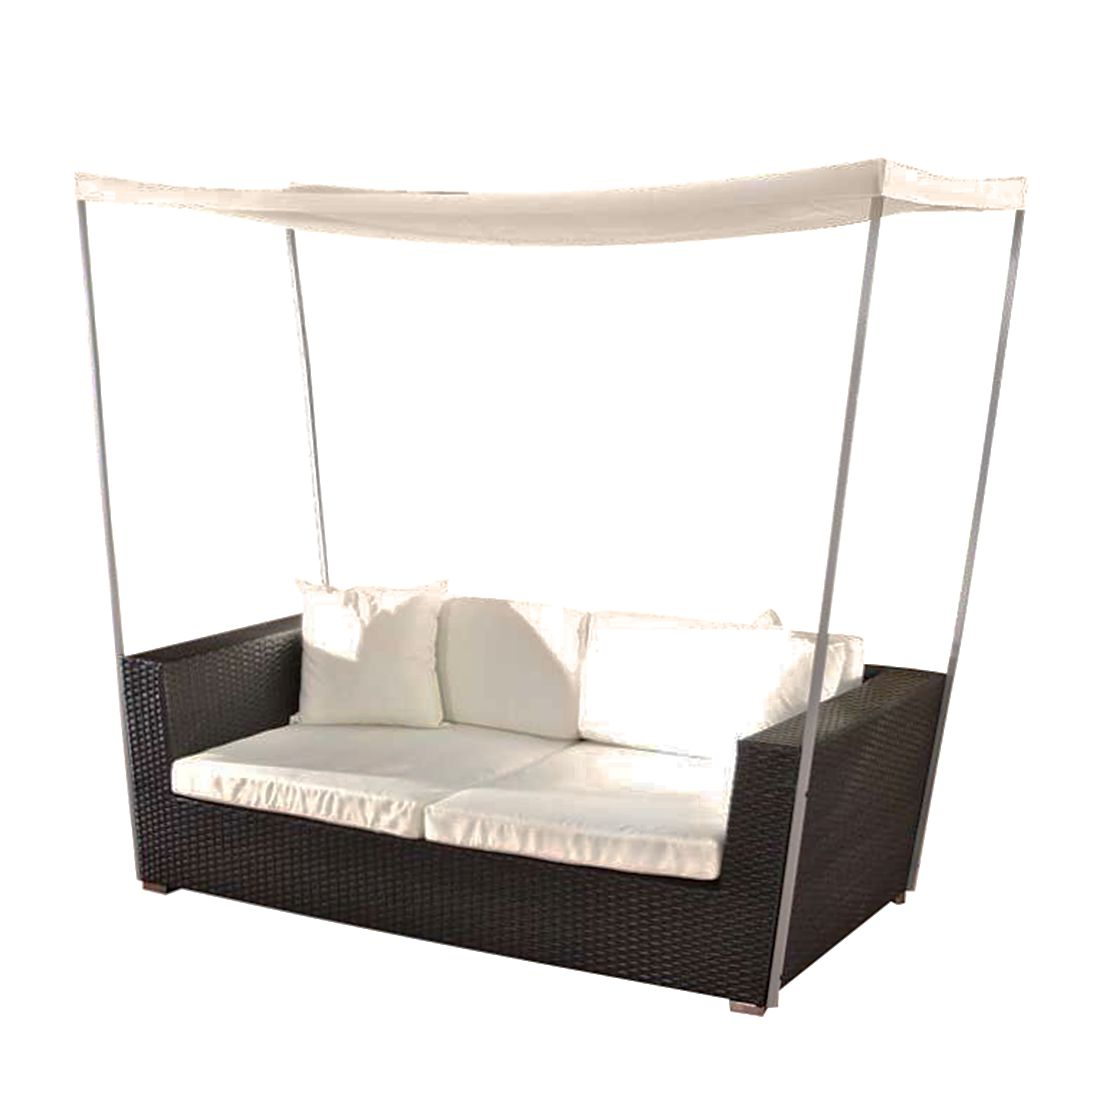 polyrattan gartengarnitur marsala schwarz aluminium polyrattan. Black Bedroom Furniture Sets. Home Design Ideas